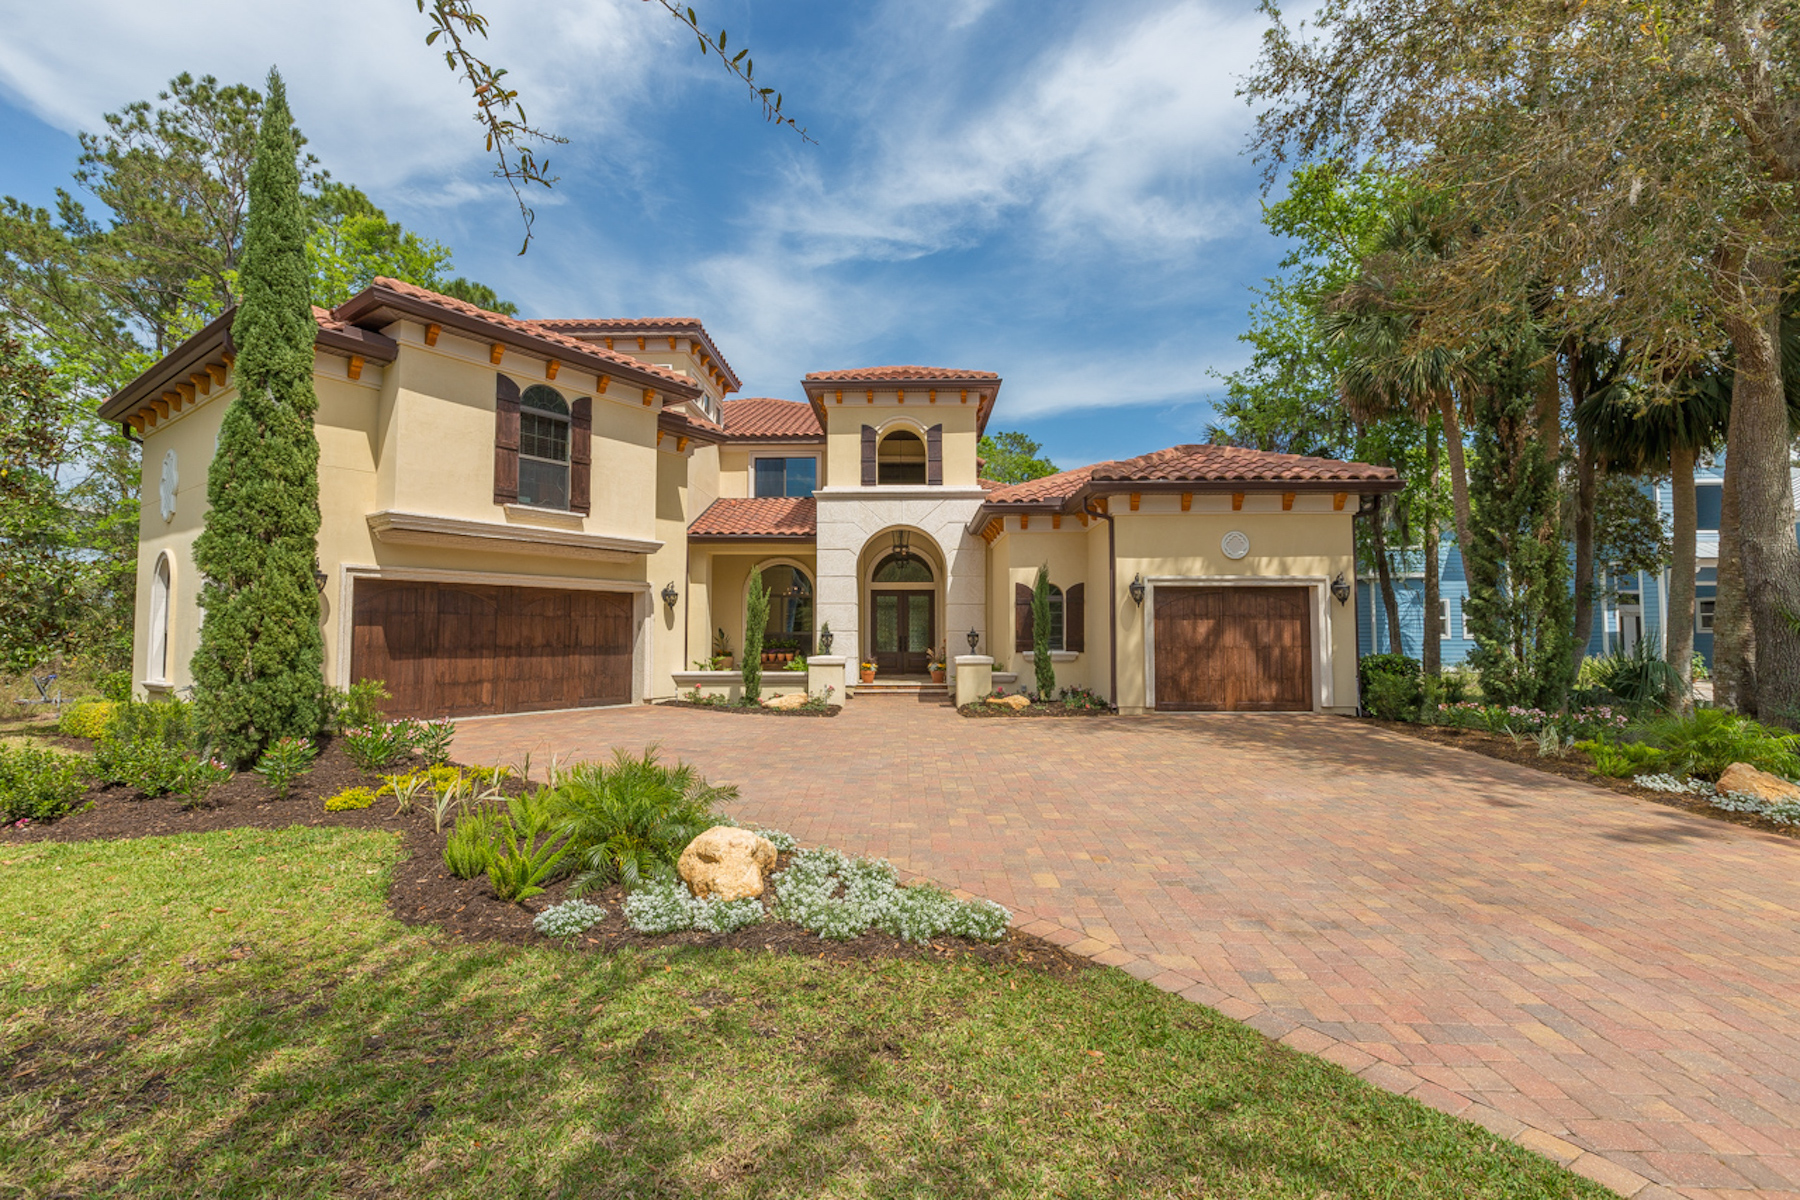 Single Family Home for Sale at Ponte Vedra Intracoastal Home 120 Preserve Haven View Ponte Vedra Beach, Florida, 32081 United States